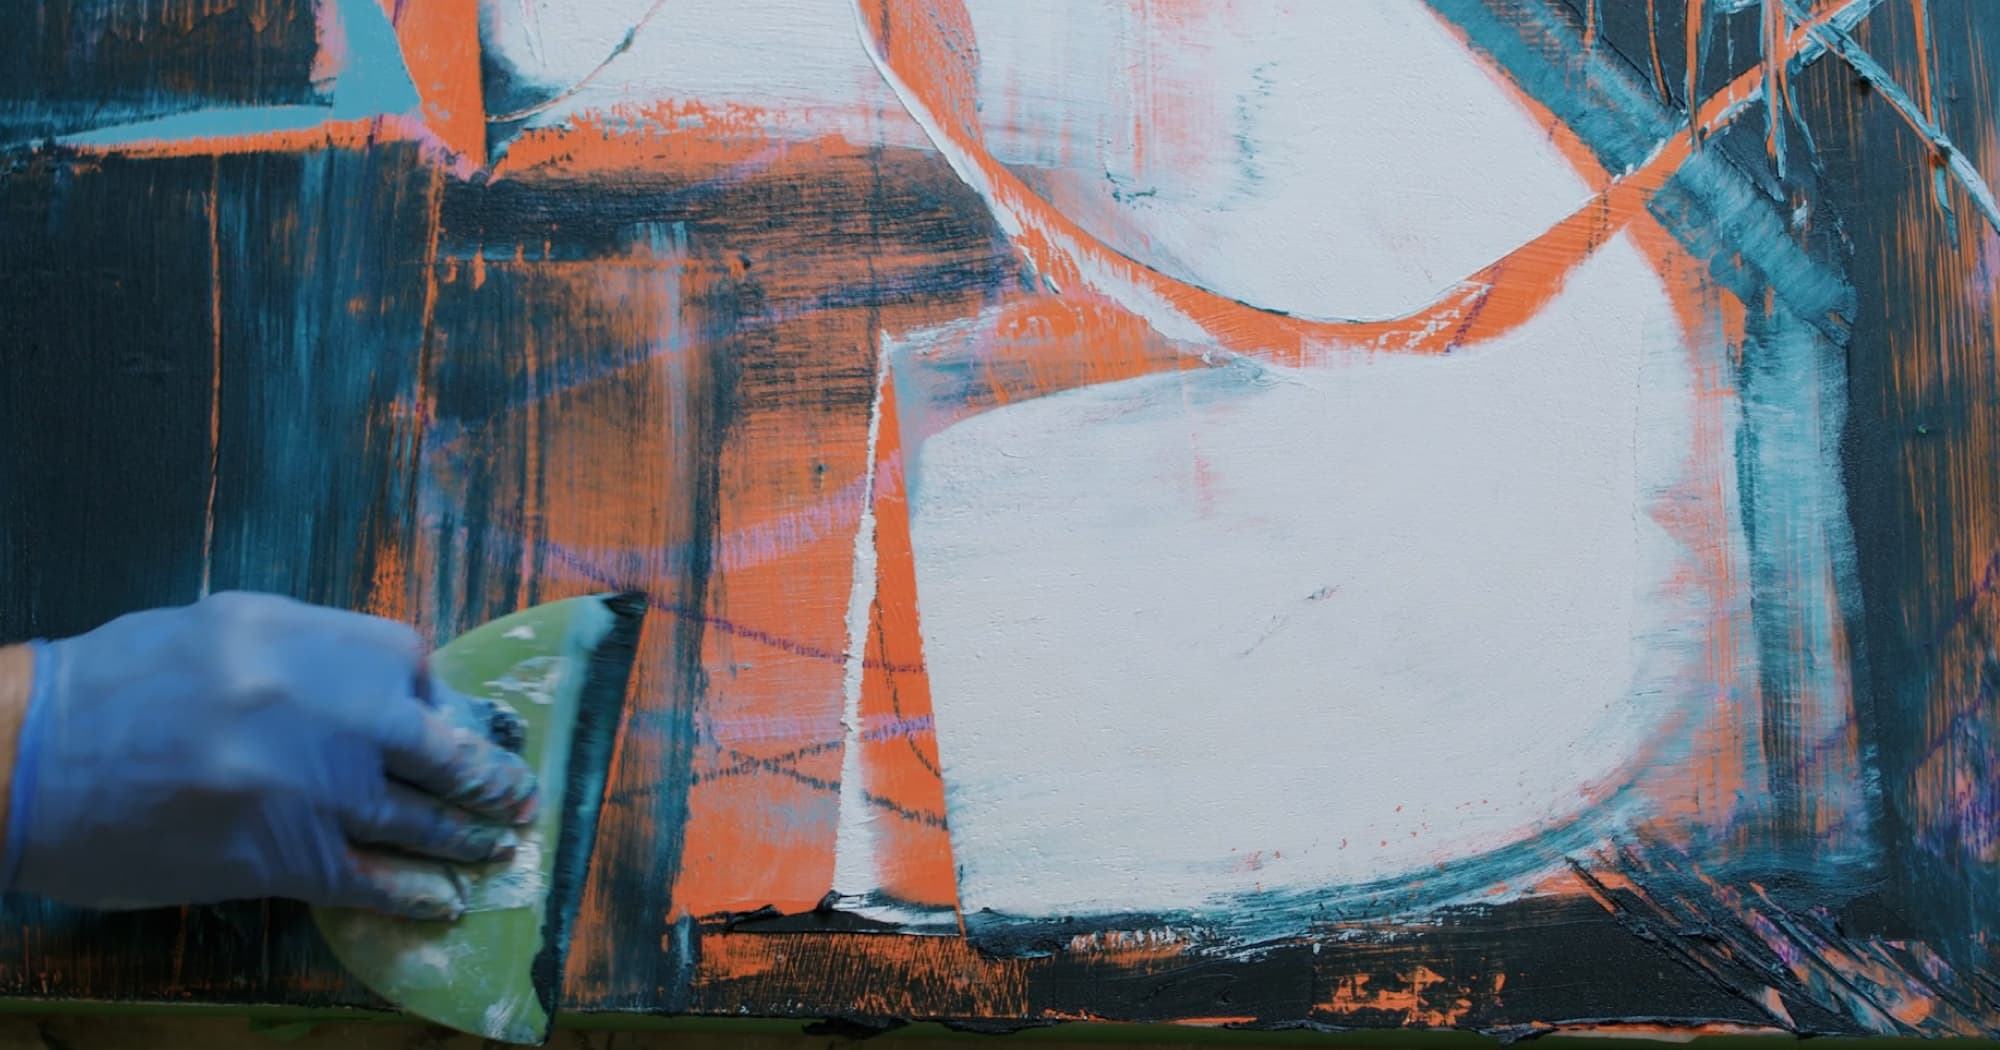 Blurry hand creating abstract art in dark blues, oranges, and whites.